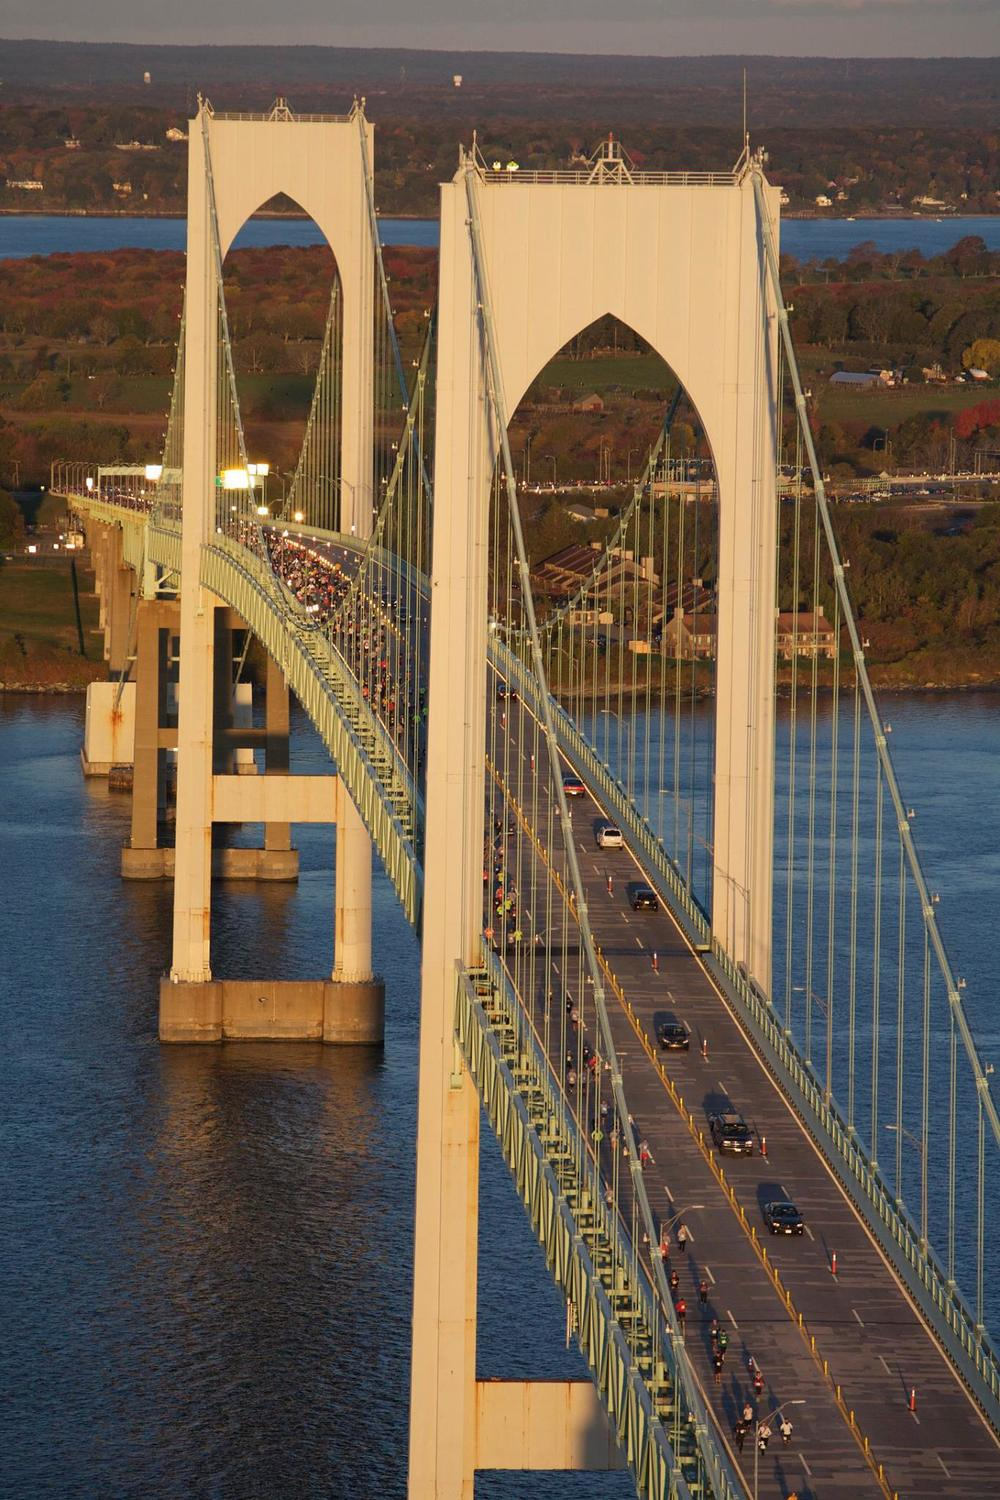 Newport Shipyard has been a sponsor of the Pell Bridge Run since its inaugural event in 2012!